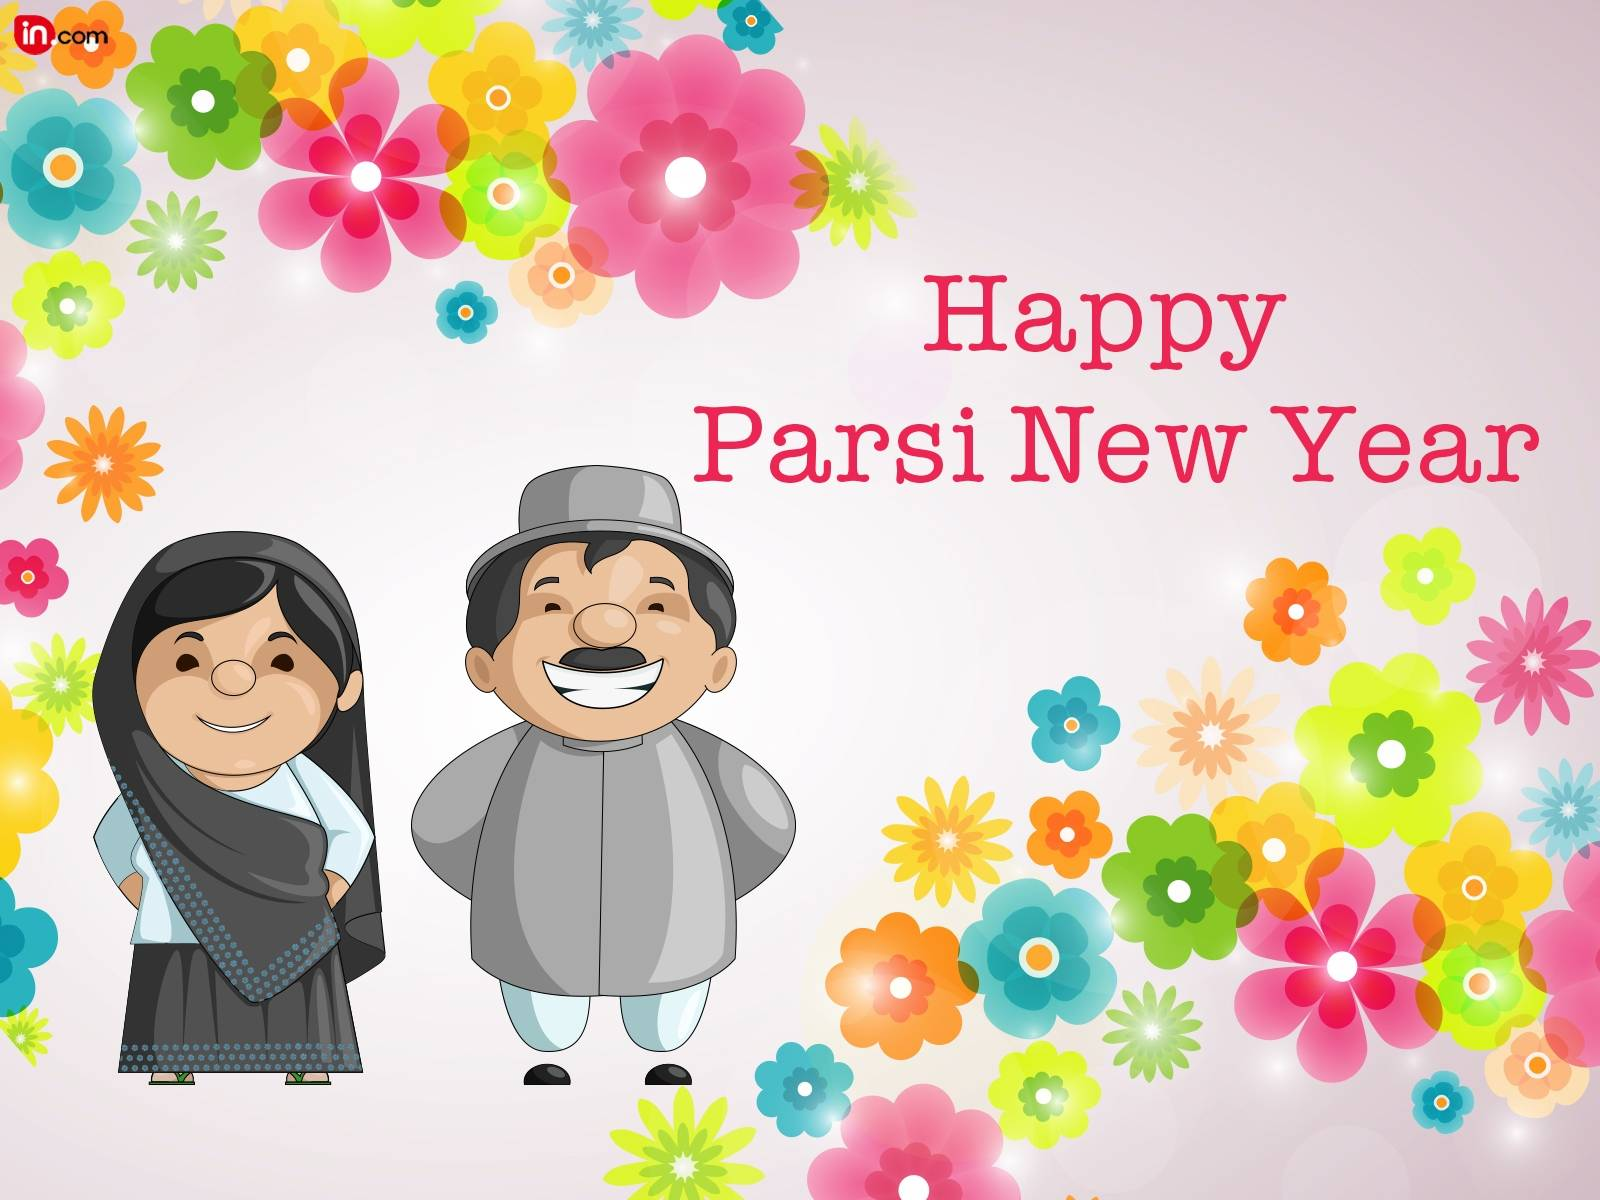 Parsi Family Wishing You Happy Parsi New Year Colorful Flowers In Background